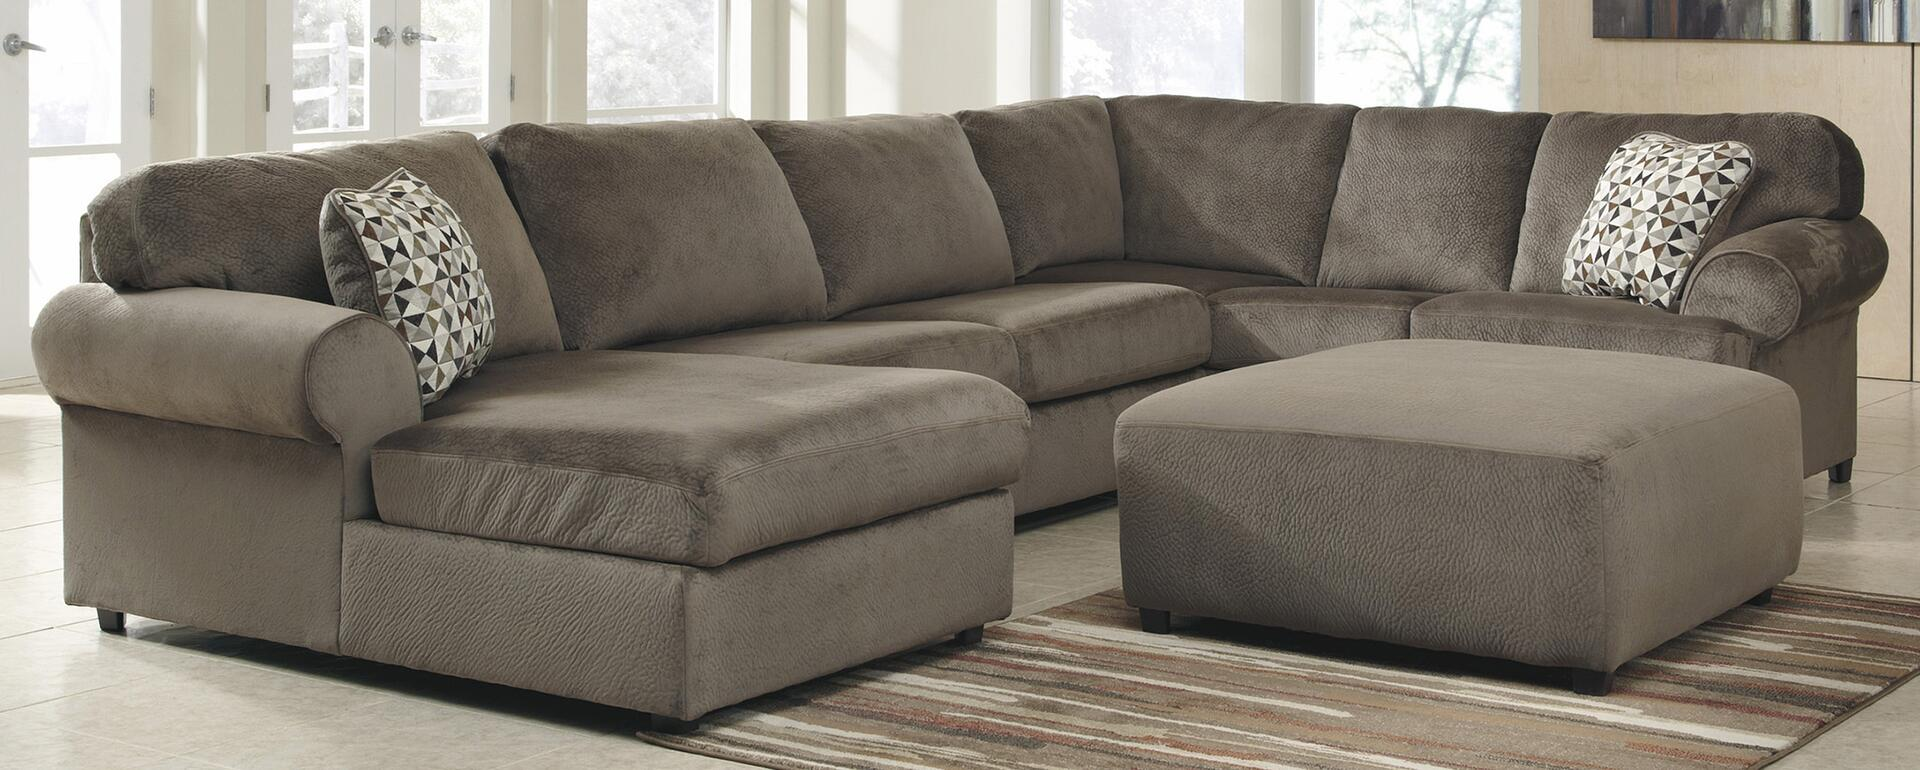 Attirant ... Signature Design By Ashley Jessa Place Sectional Sofa With Optional  Ottoman ...